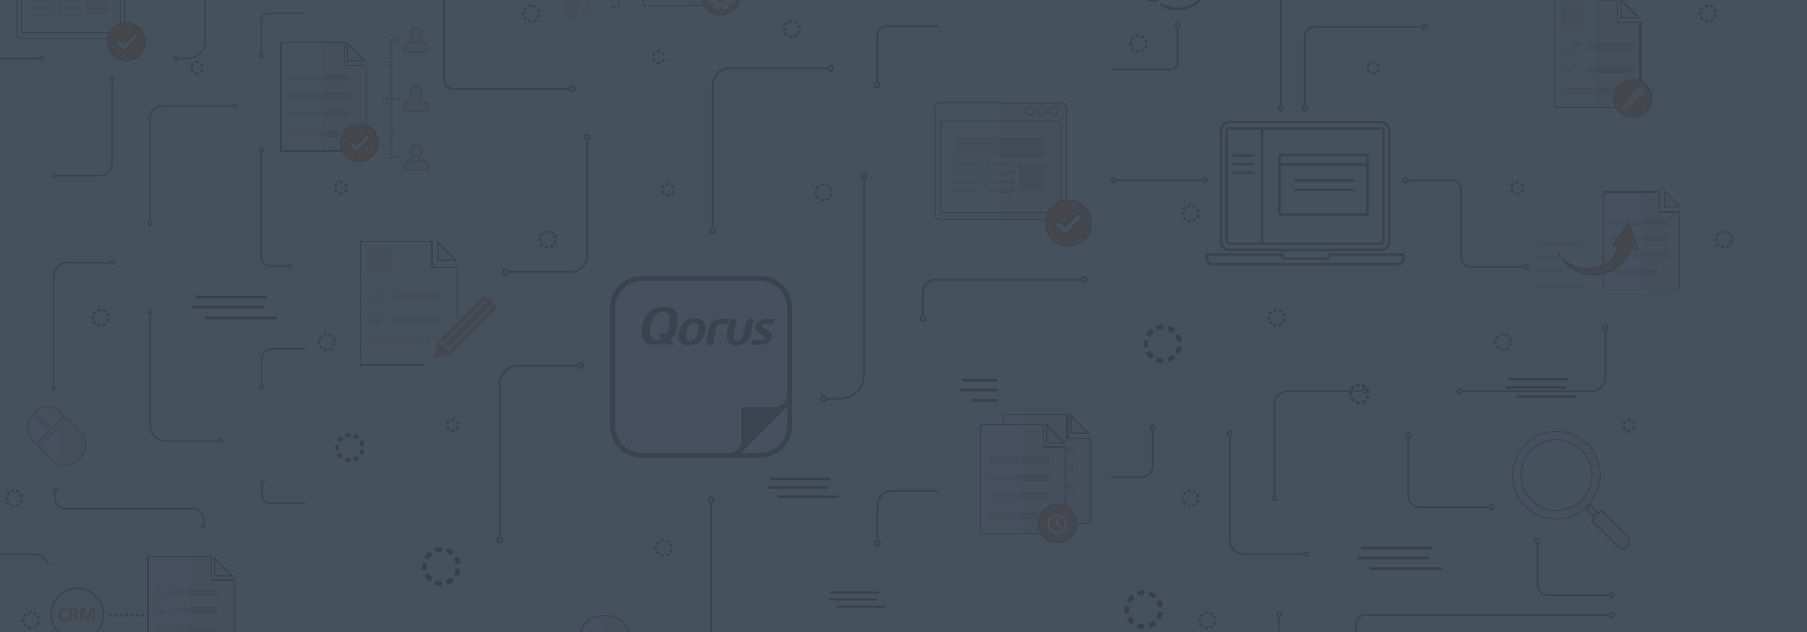 Qorus Software Icons